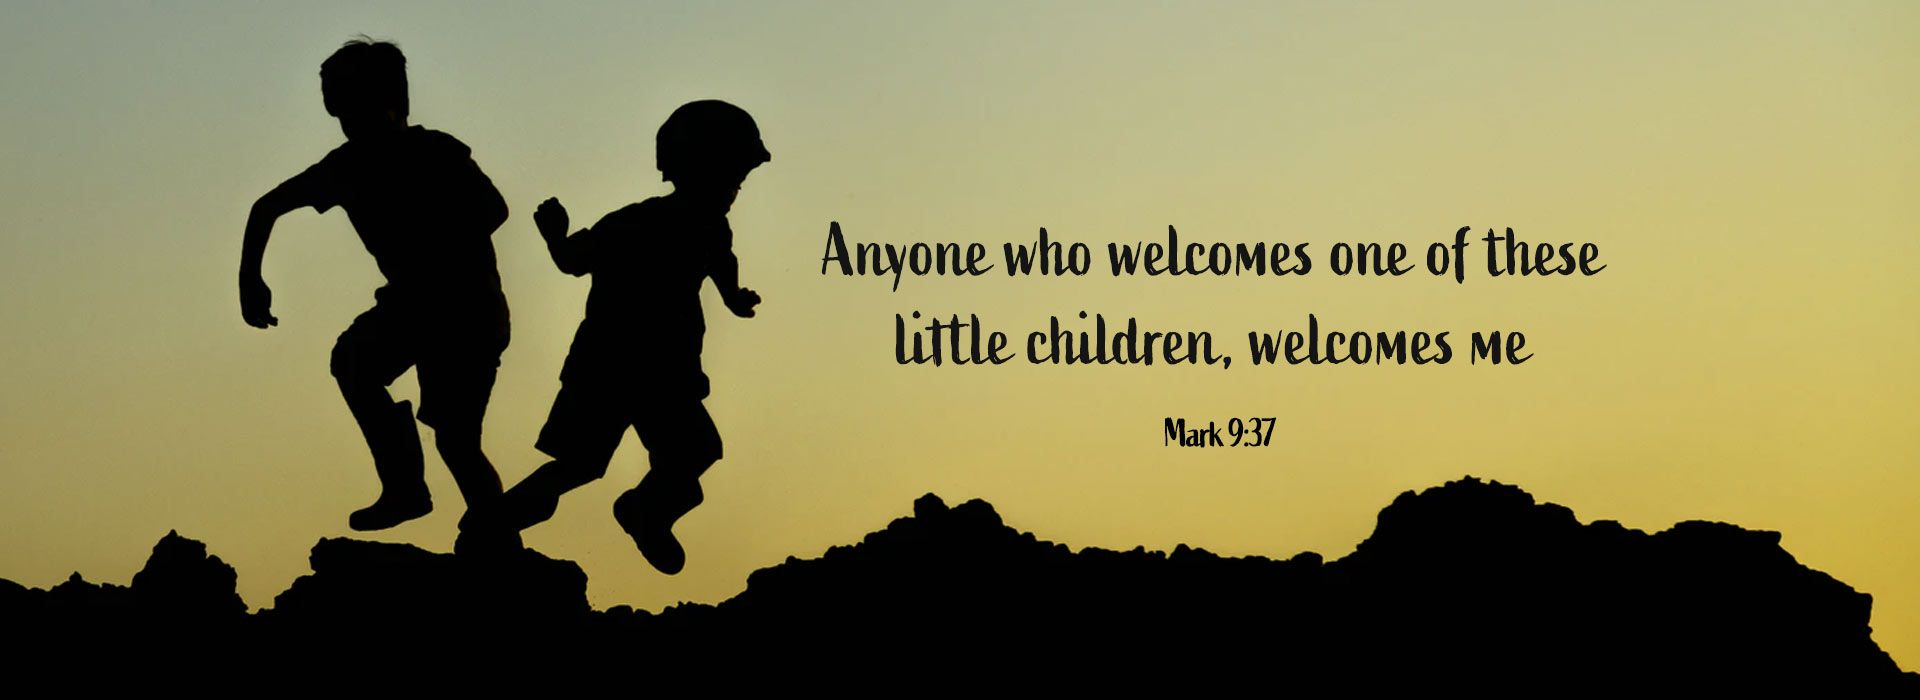 25th Sunday in Ordinary Time -